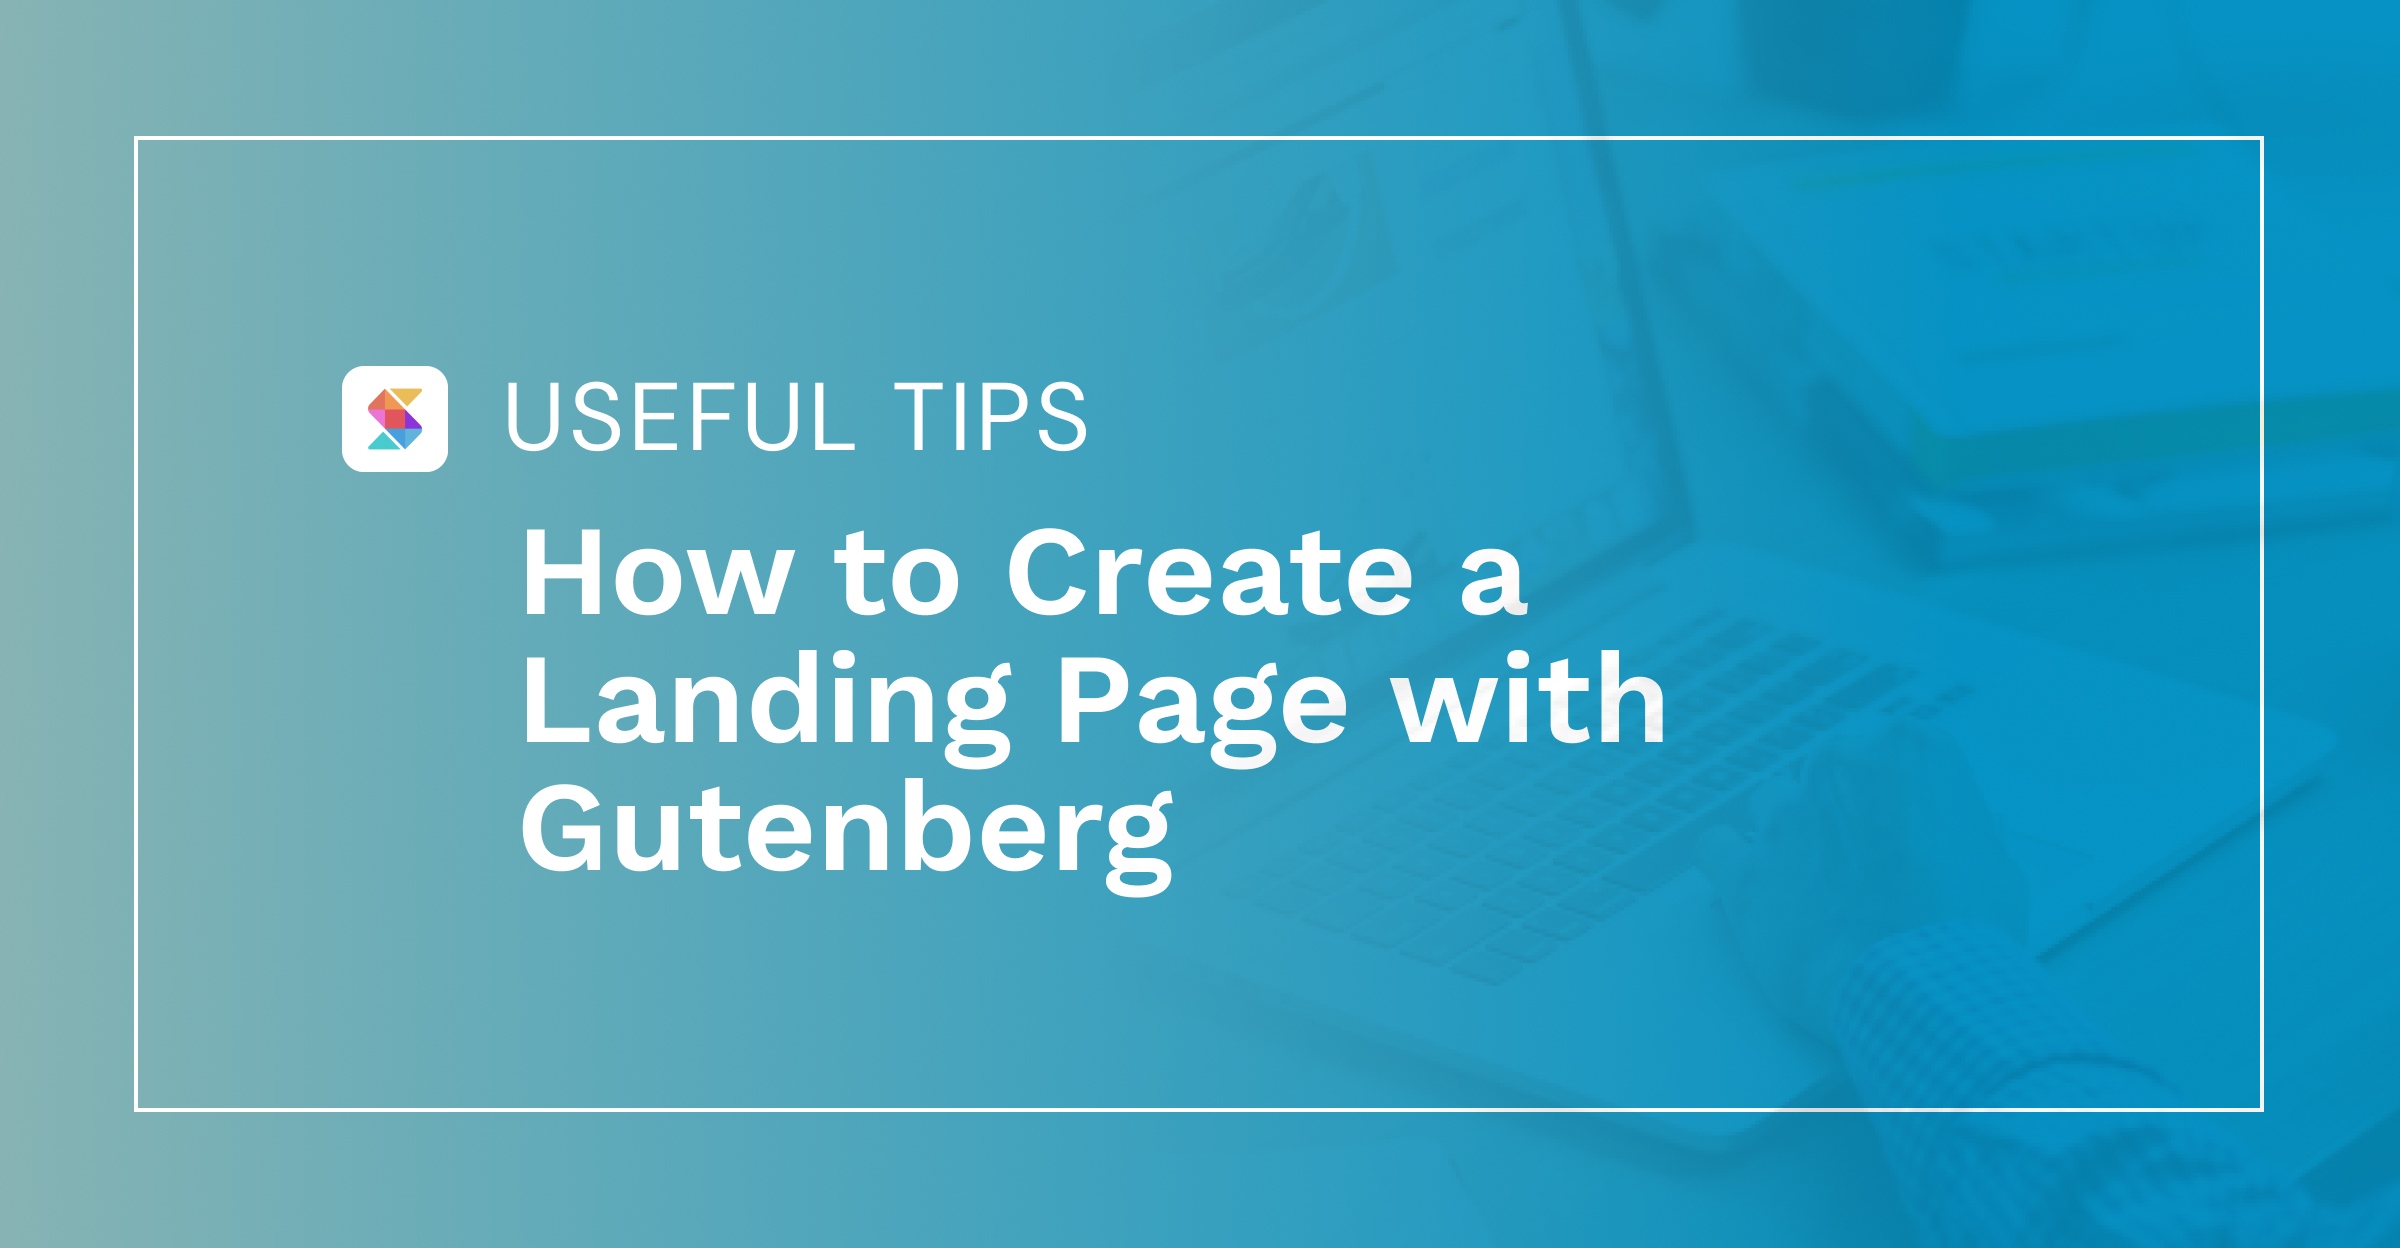 How to Create a Landing Page with Gutenberg